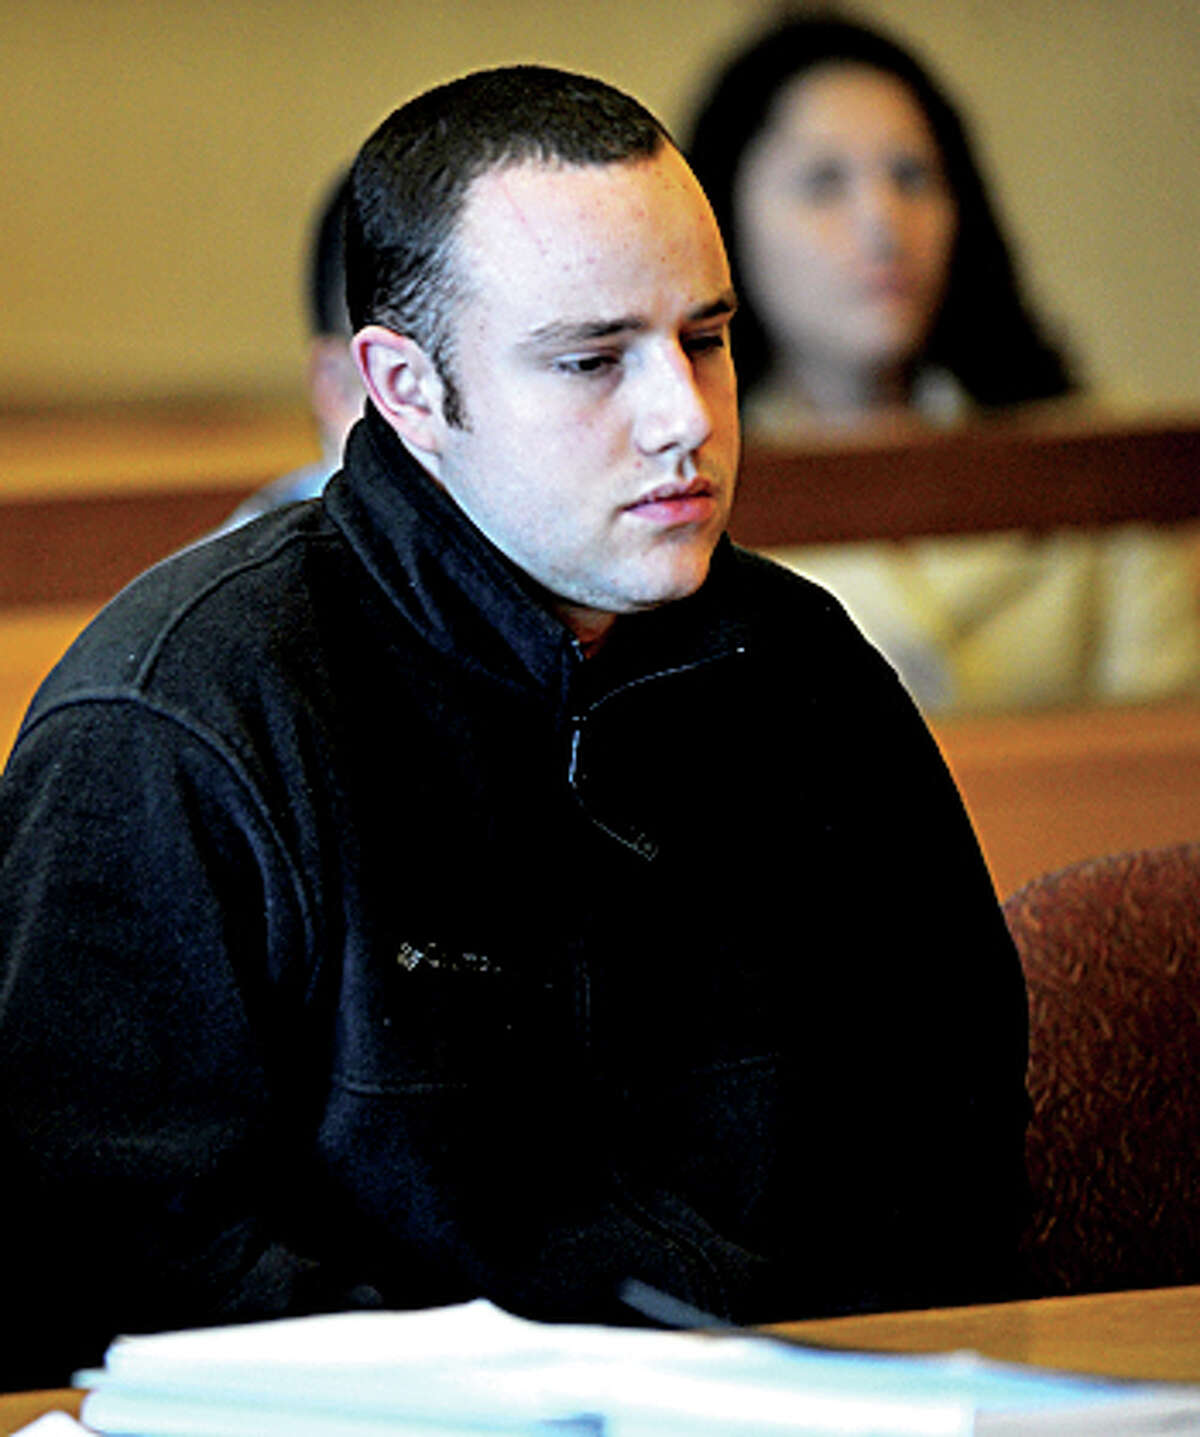 Aaron Ramsey of Wilton is found not guilty by reason of mental disease or deficiency by a three-judge panel during a verdict reading at state Superior Court in Stamford on Wednesday, December 12, 2012. Ramsey was on trial for beating his father, Edward, to death in May after Ramsey allegedly heard voices.